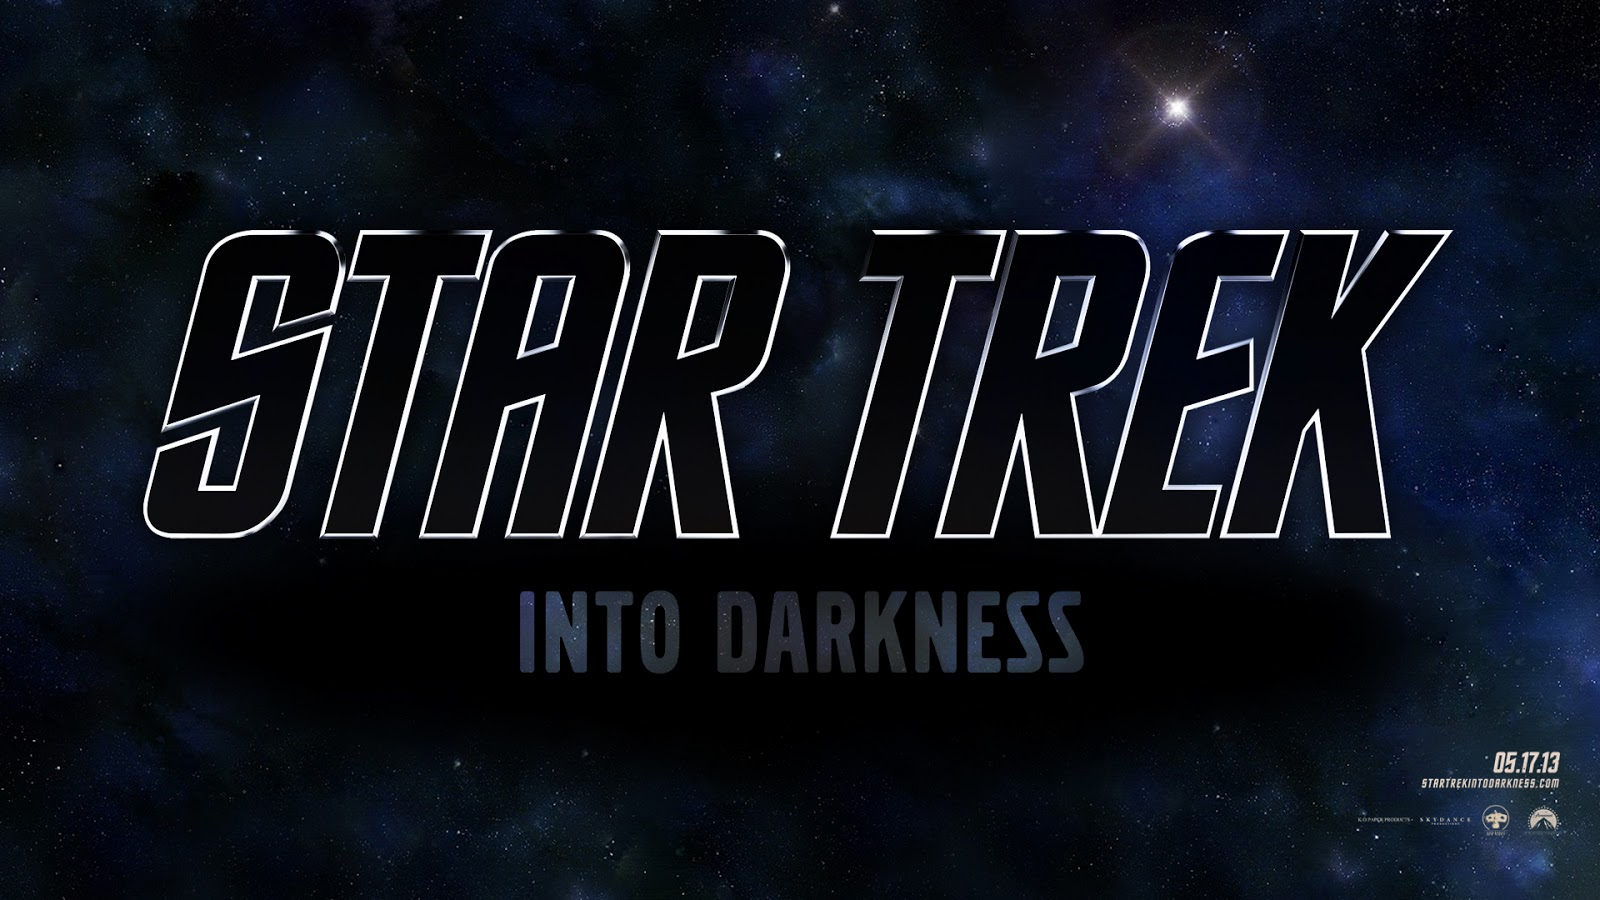 Star Trek Into Darkness wallpaper 1920x1080 001